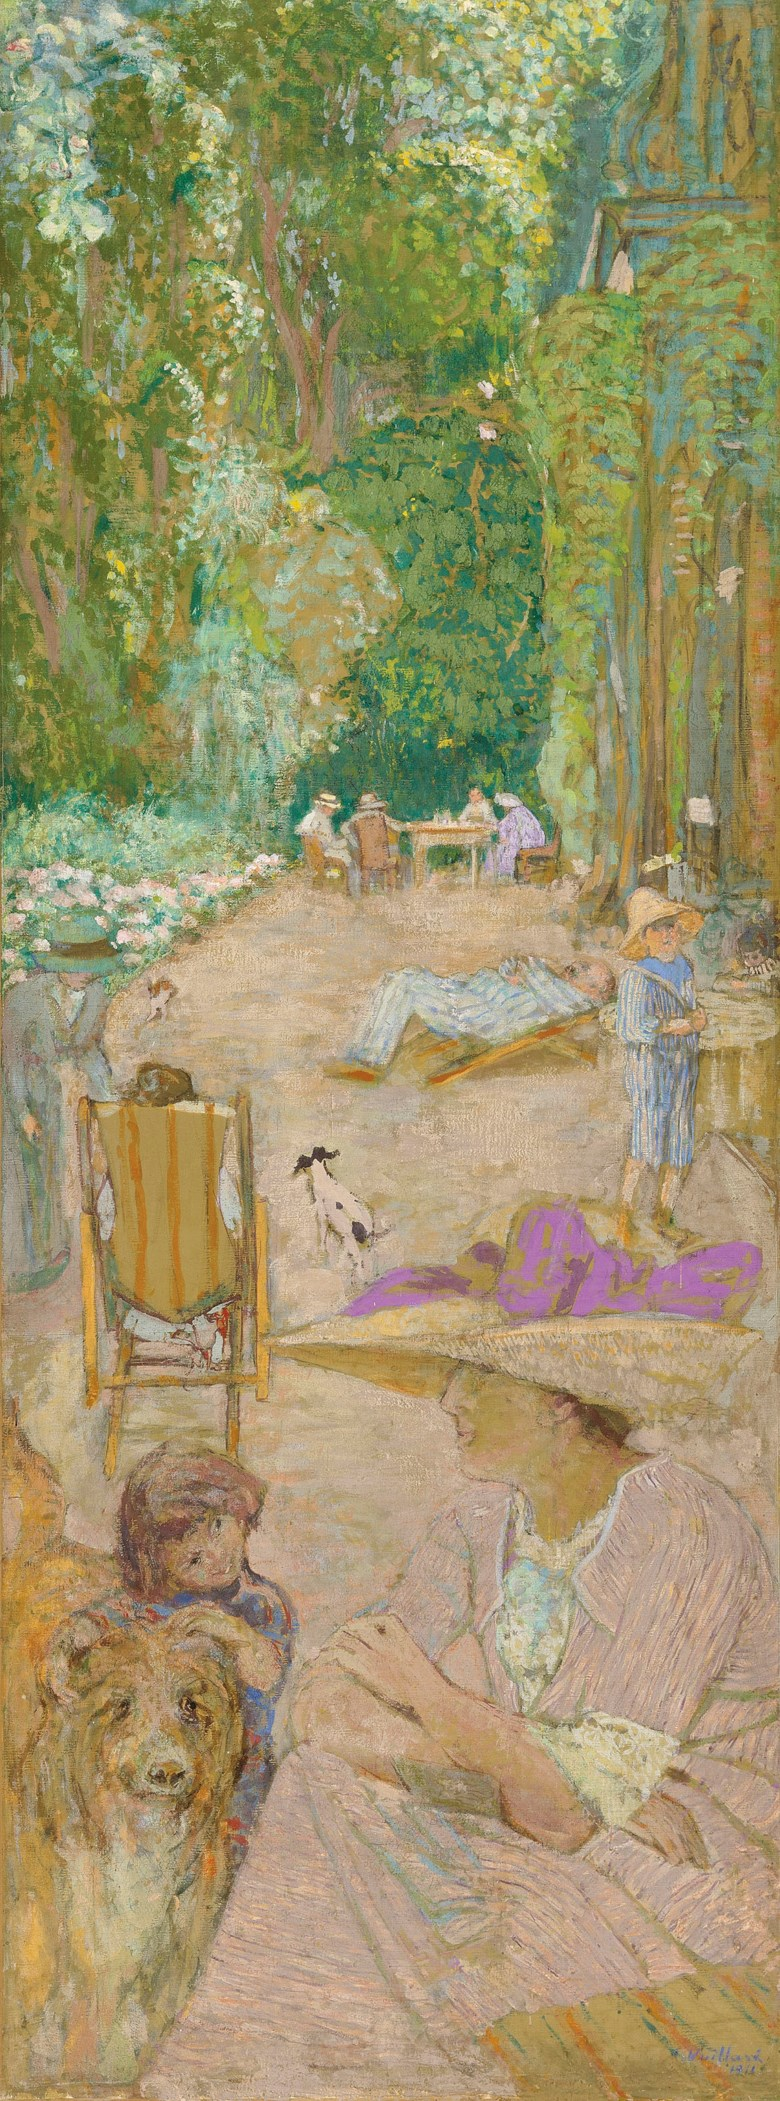 Edouard Vuillard (1868-1940), Aux Pavillons à Cricqueboeuf. Devant la maison, 1911; reworked by the artist in 1934. 83½ x 31½  in (212 x 80  cm). Estimate £600,000-800,000. Offered in Impressionist and Modern Art Evening Sale  on 27 February 2019 at Christie's in London